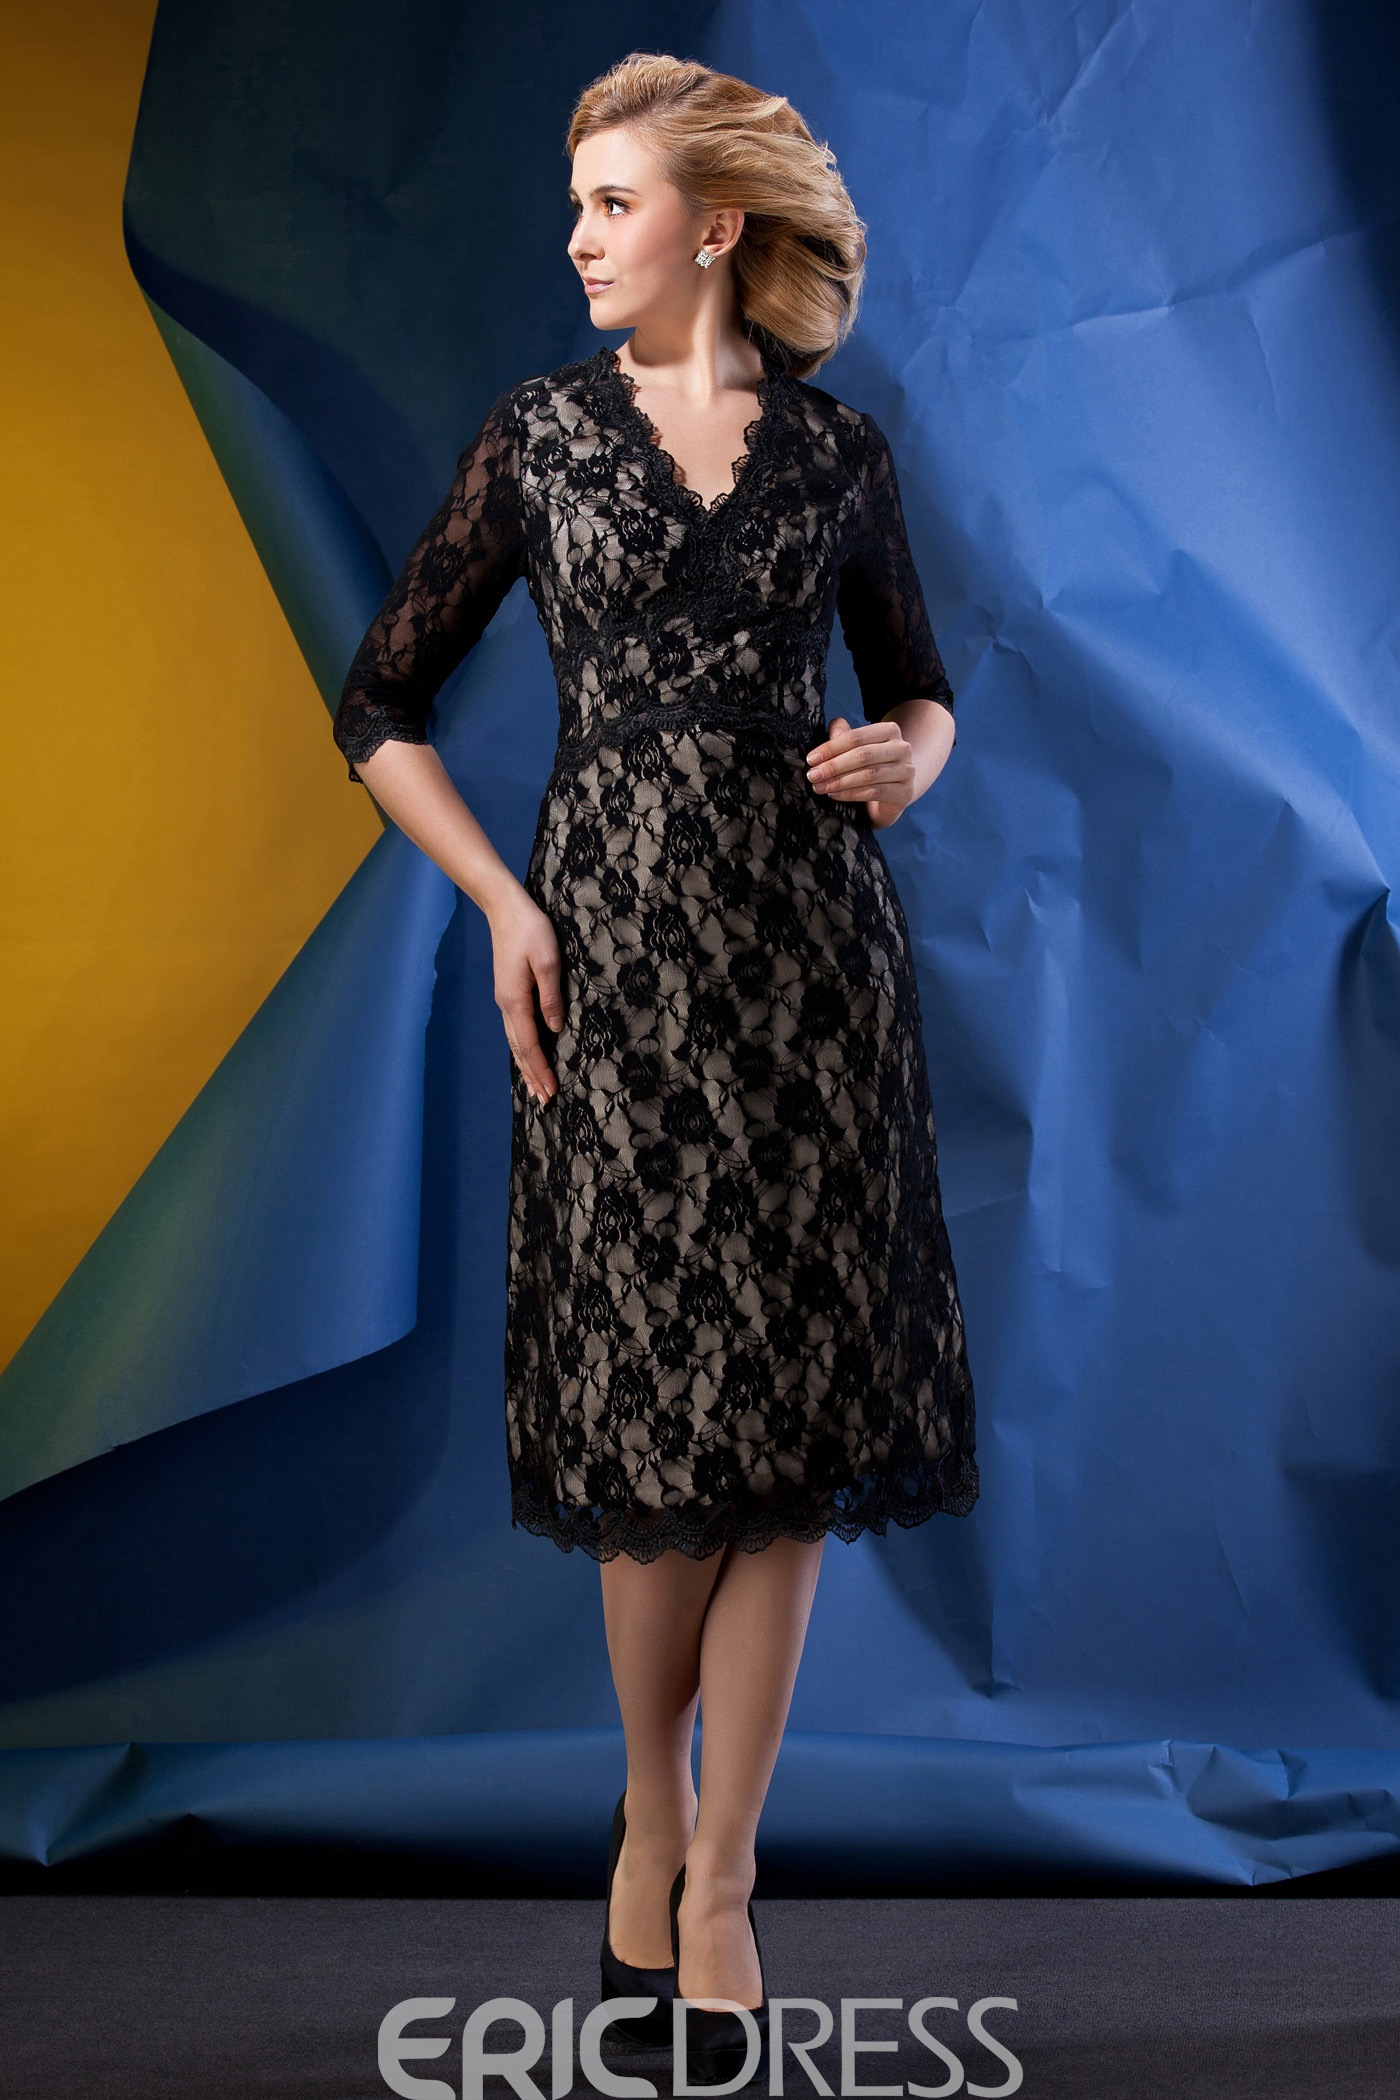 Romantic Lace Sheath/Column V-Neck Half-Sleeves Tea-length Alina's Mother of the Bride dress